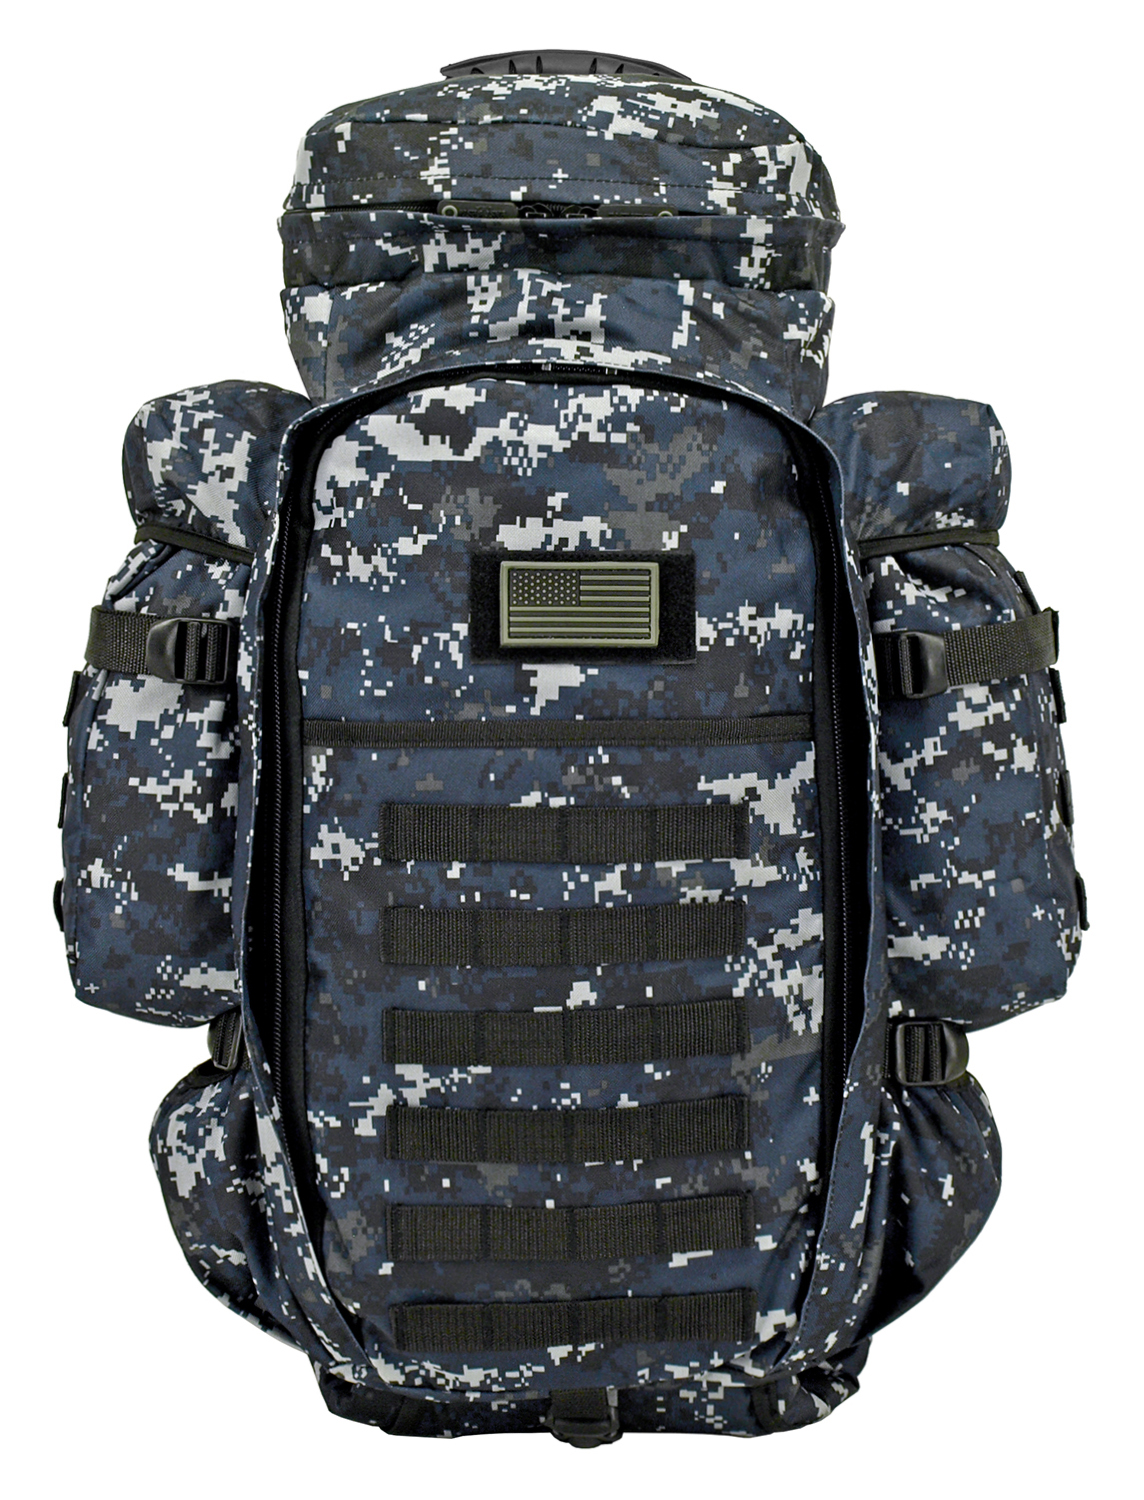 East West 9.11 Tactical Full Gear Rifle Backpack - Blue Digital Camo